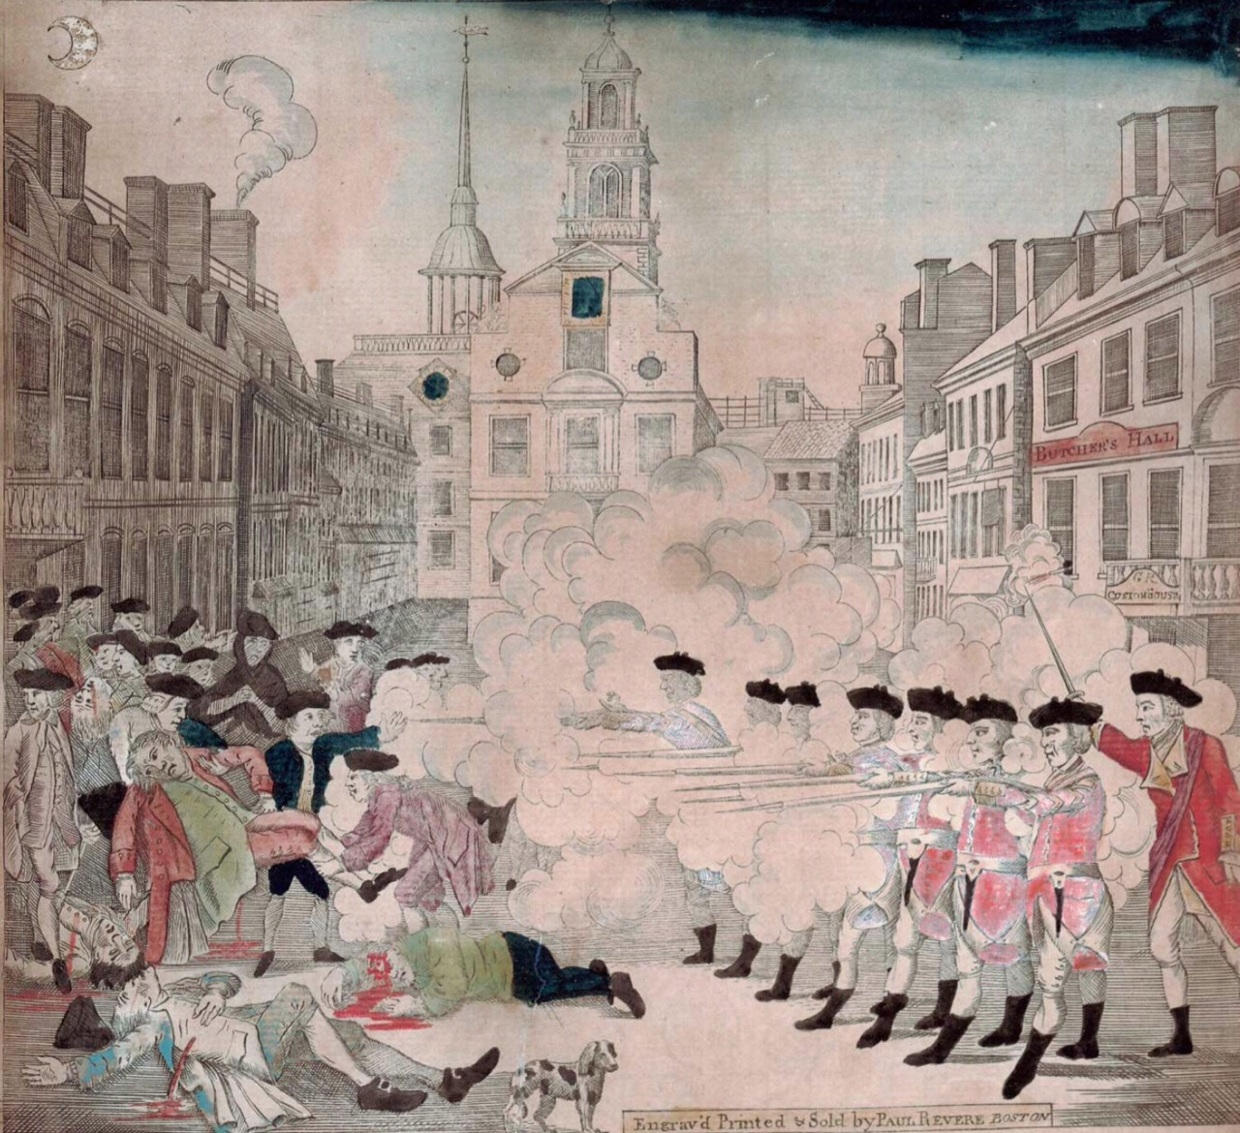 the events and social effects of the boston massacre Boston massacre definition, a riot in boston (march 5, 1770) arising from the resentment of boston colonists toward british troops quartered in the city, in which the troops fired on the mob and killed several persons see more.